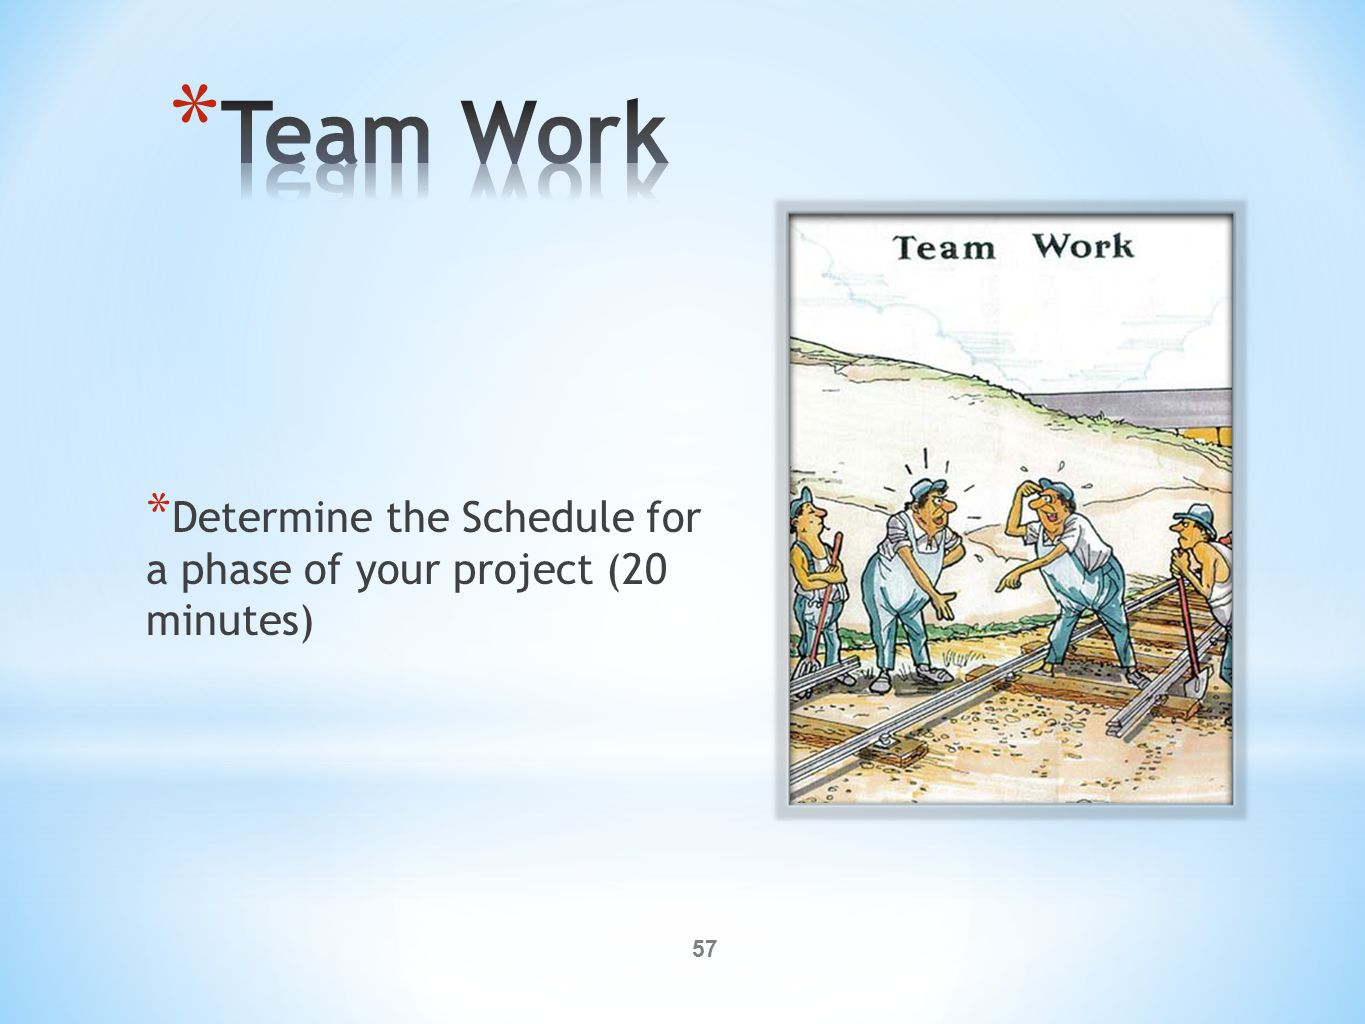 57 * Determine the Schedule for a phase of your project (20 minutes)